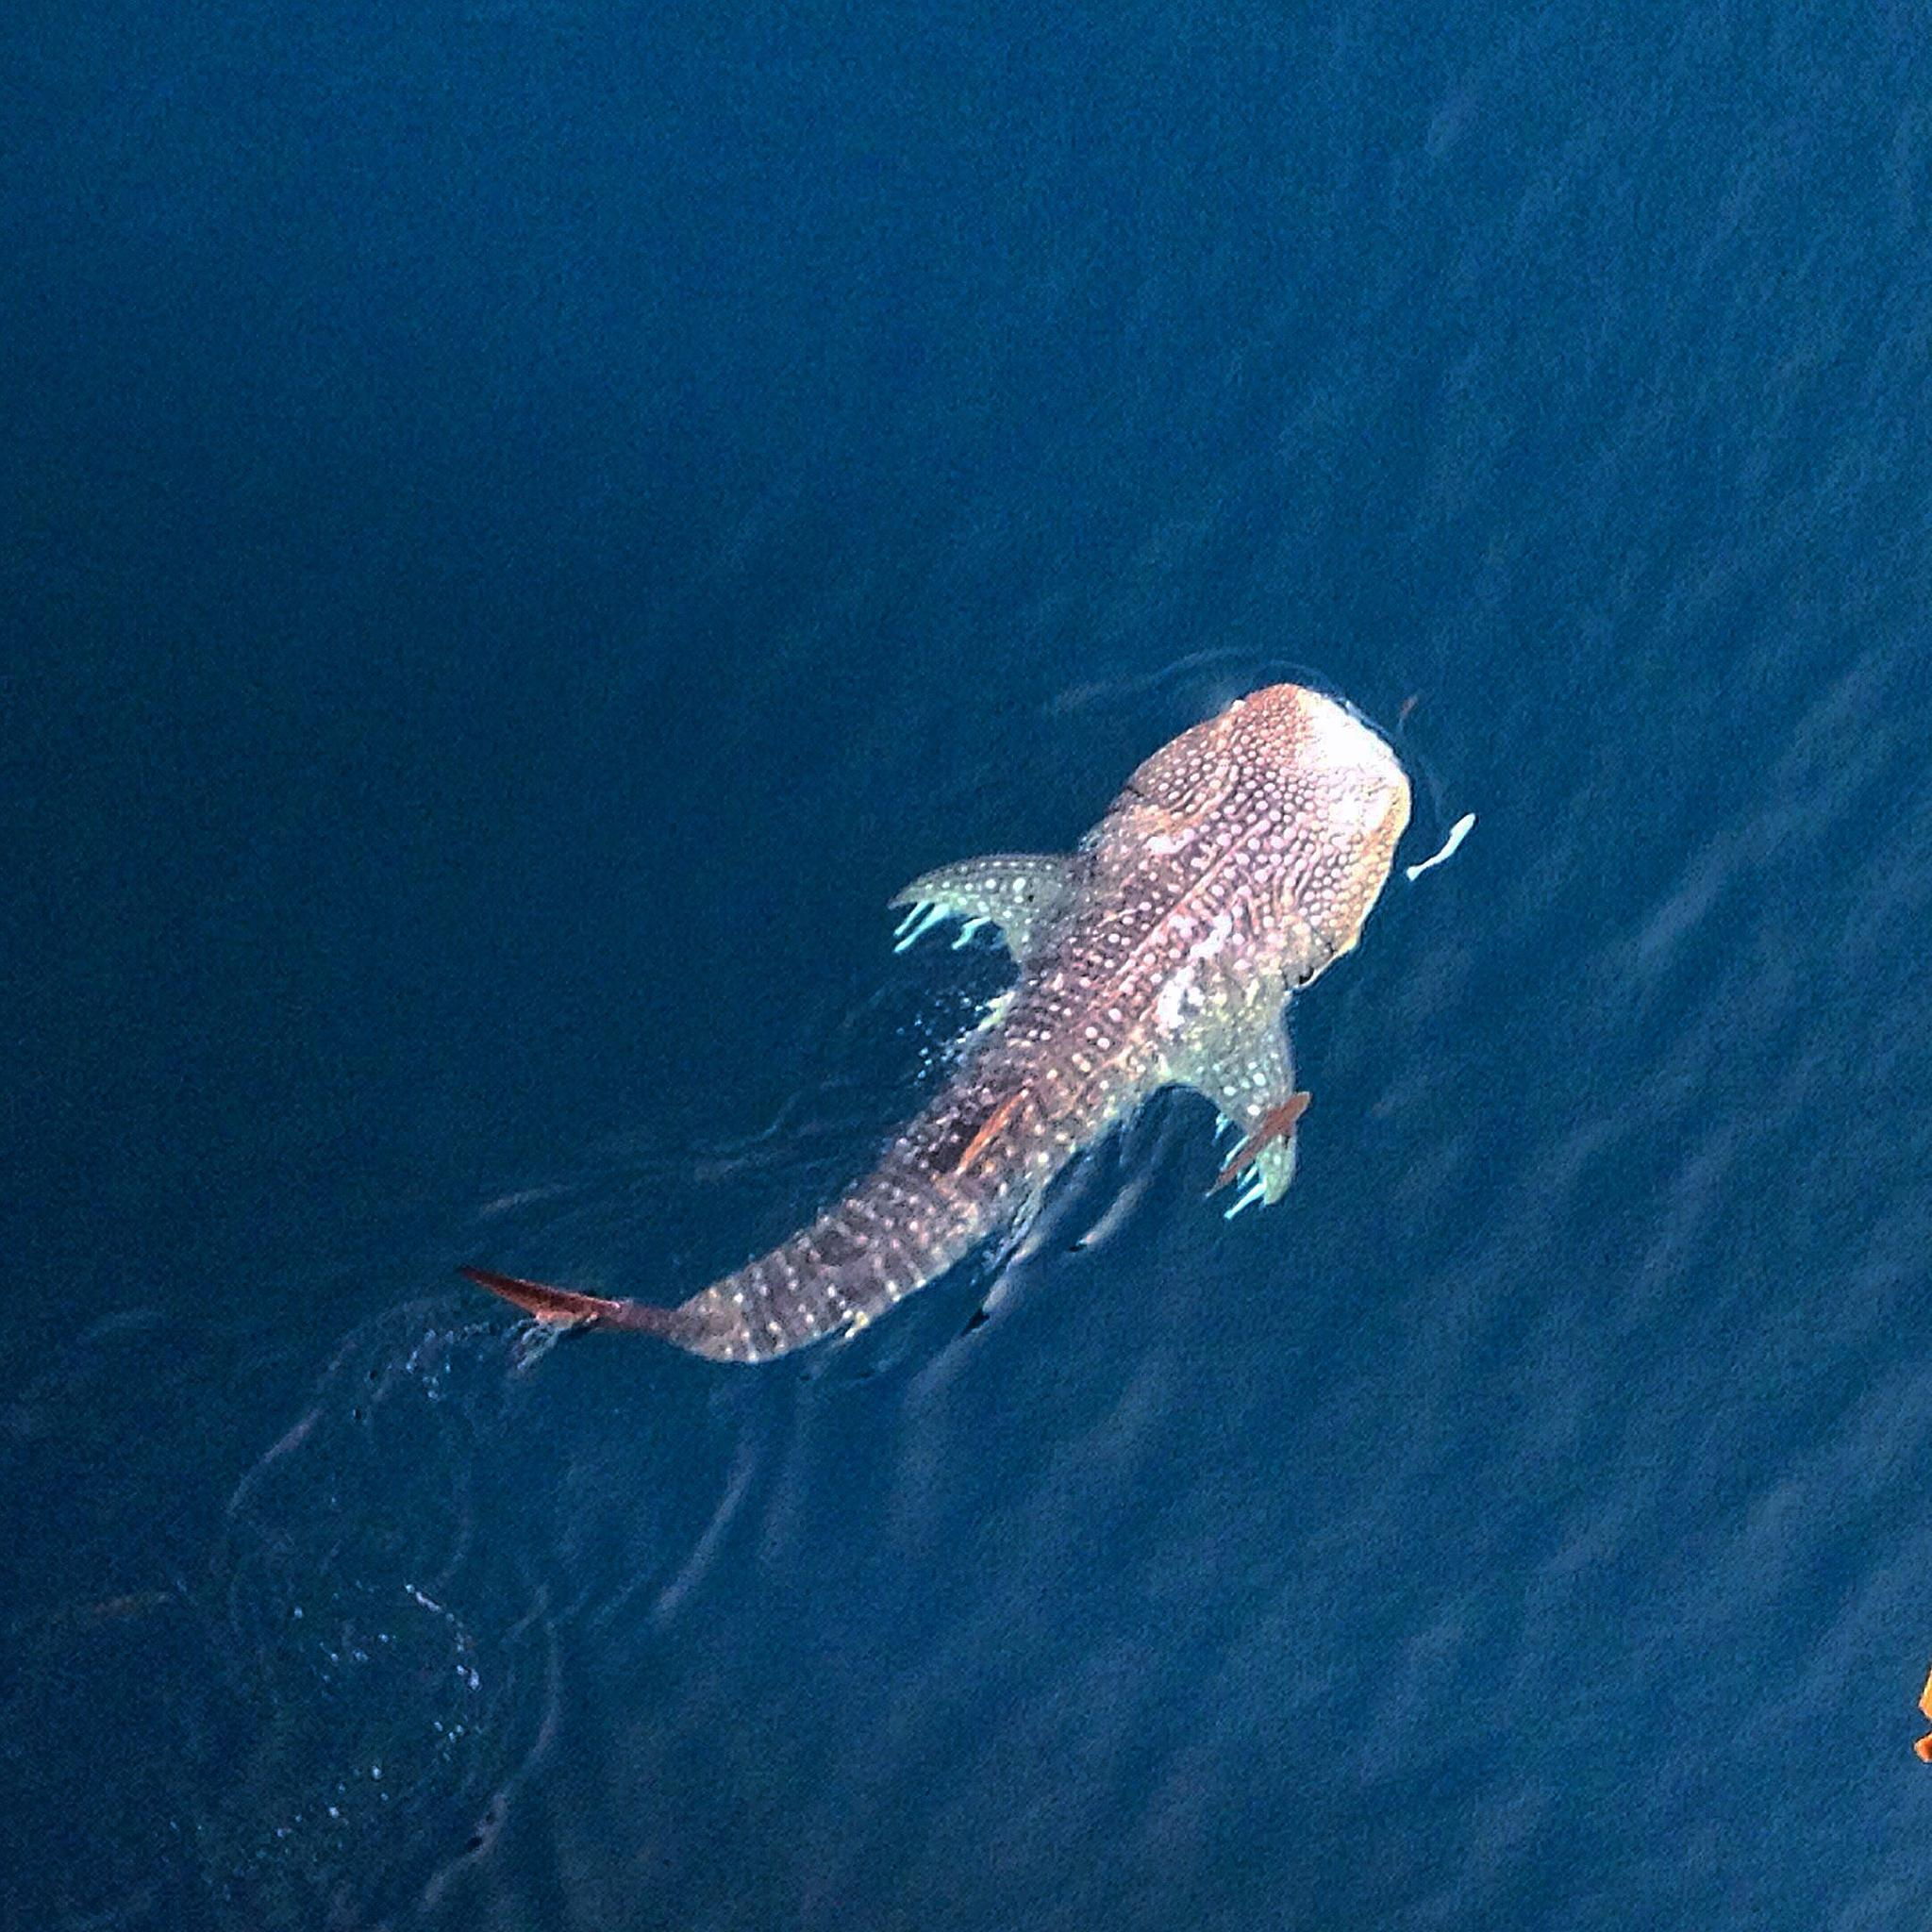 Whale shark with baby by wyler.devotta